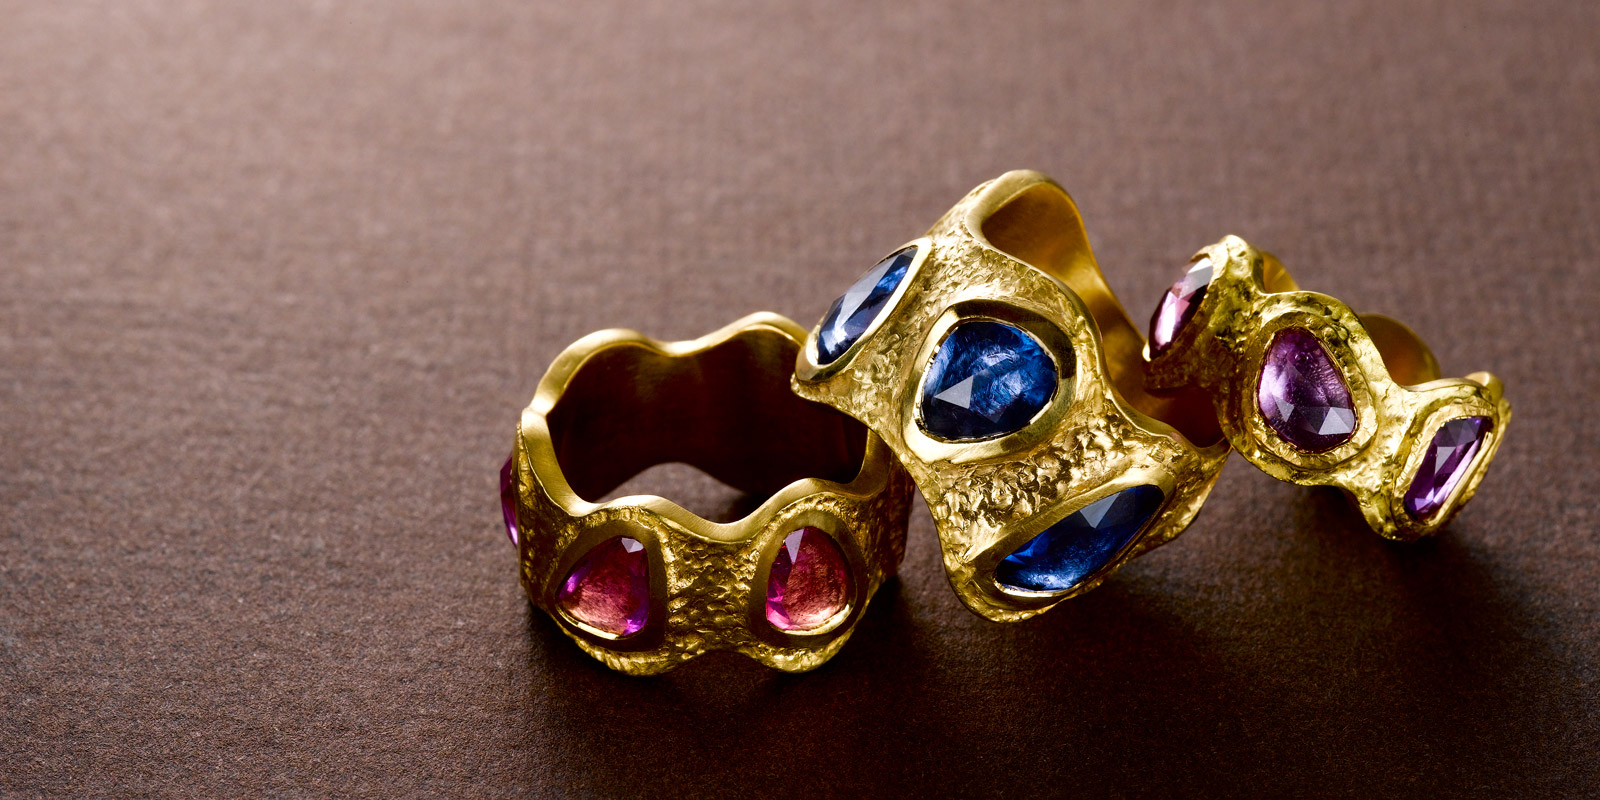 Rose cut Sapphires and 22 karat gold bands